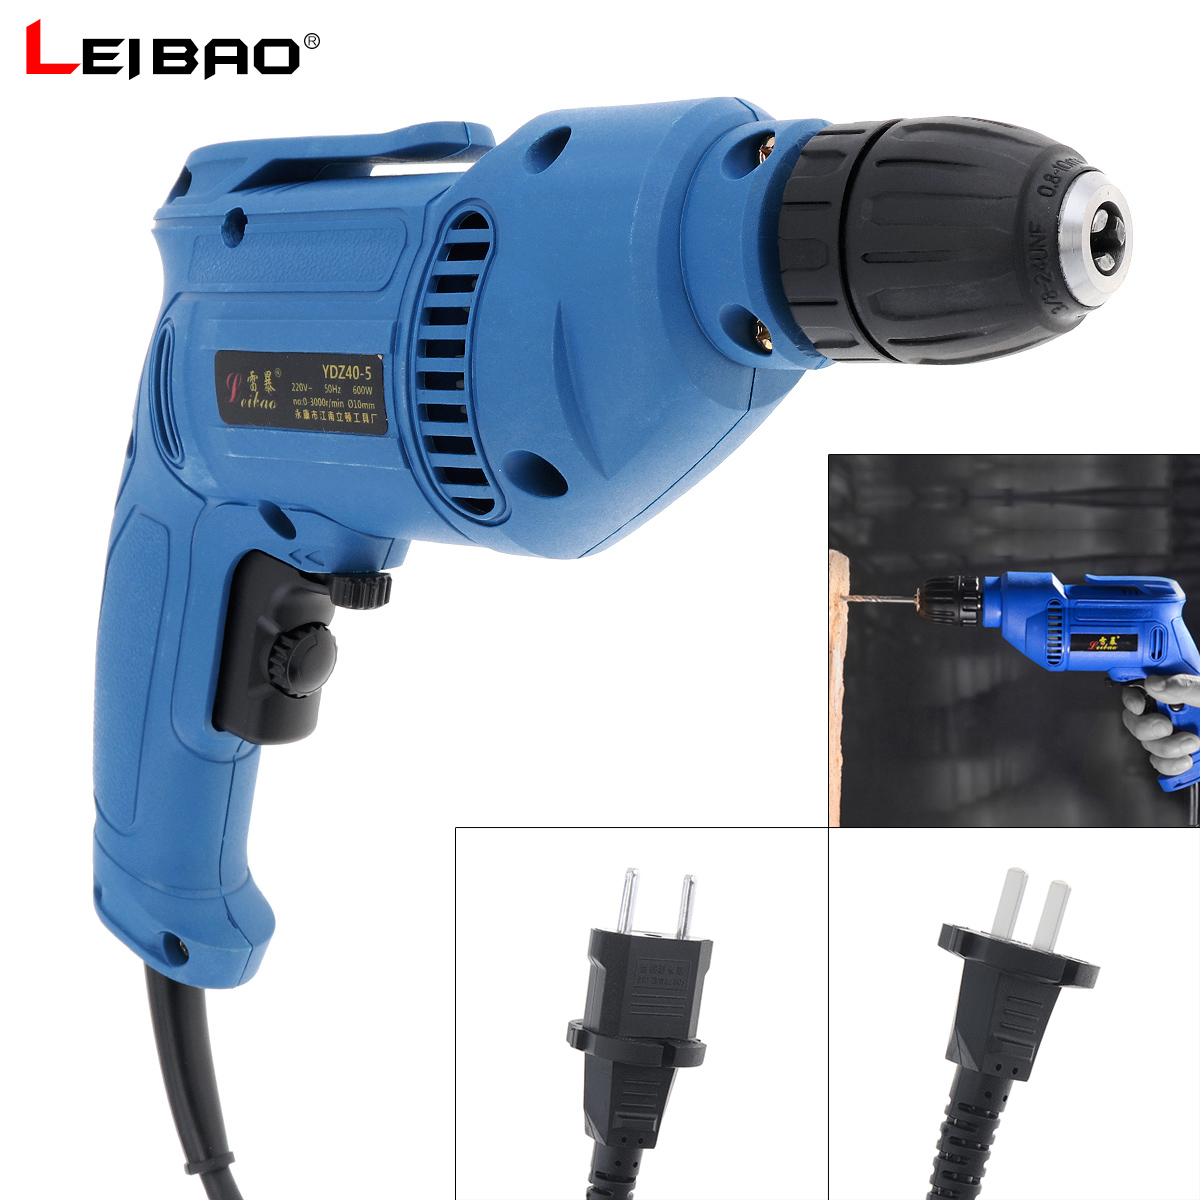 220V 600W Multifunction Handheld Impact Electric Drill with Positive Reversal Adjustable Speed Switch and 10mm Drill Chuck220V 600W Multifunction Handheld Impact Electric Drill with Positive Reversal Adjustable Speed Switch and 10mm Drill Chuck